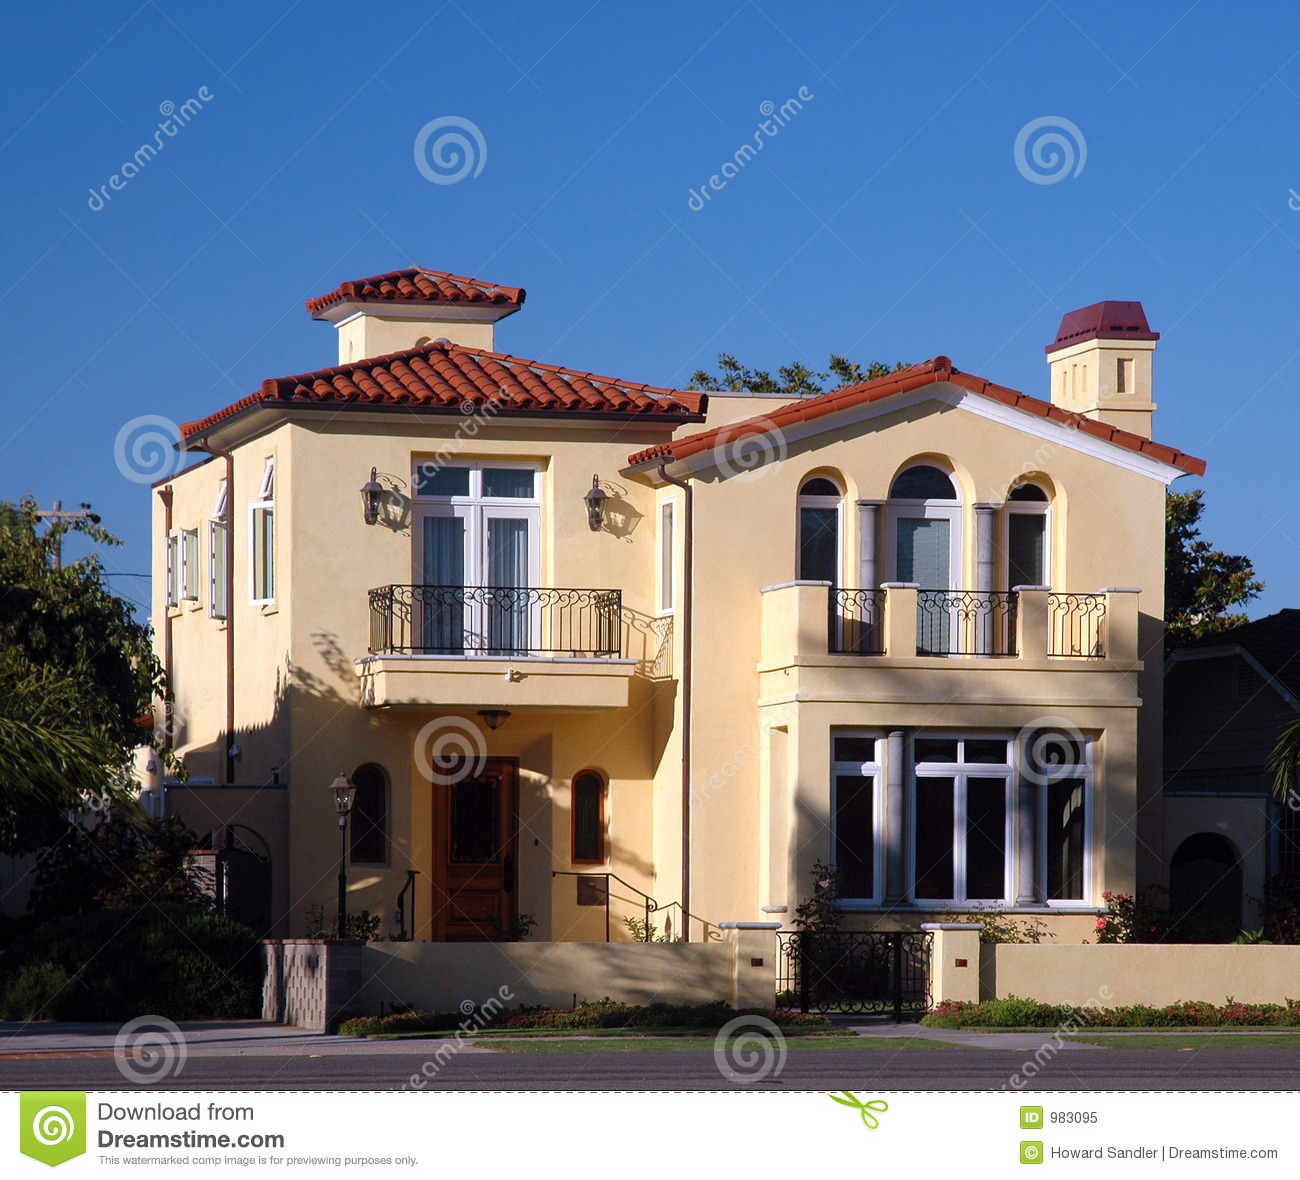 Spanish Style House Royalty Free Stock Photo Image 983095